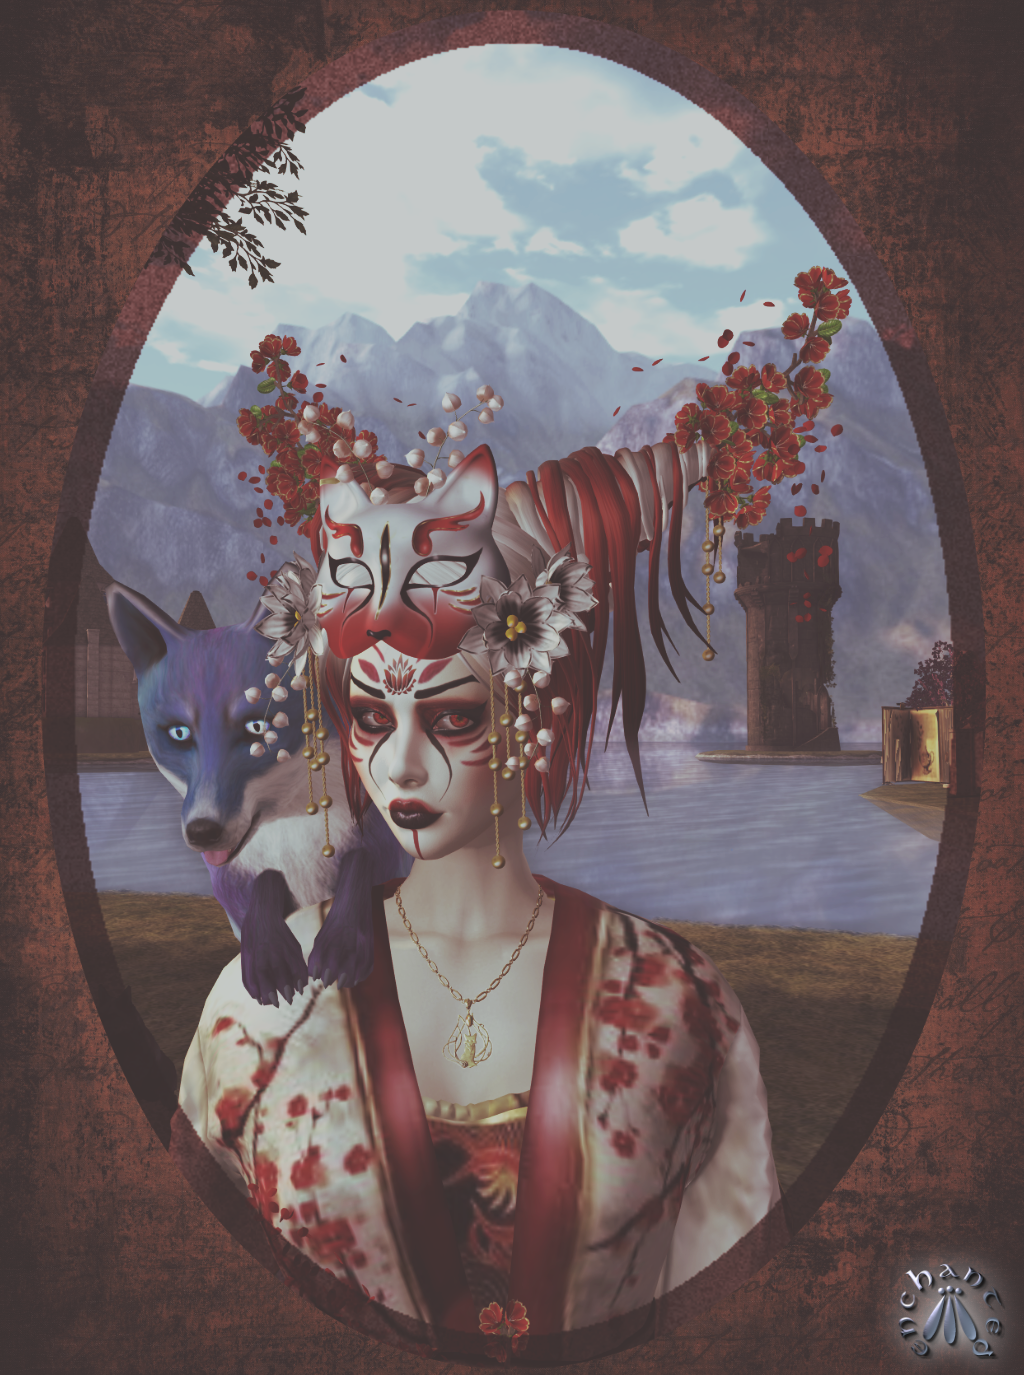 enchantment kitsune 3 edit - 19 BLOG